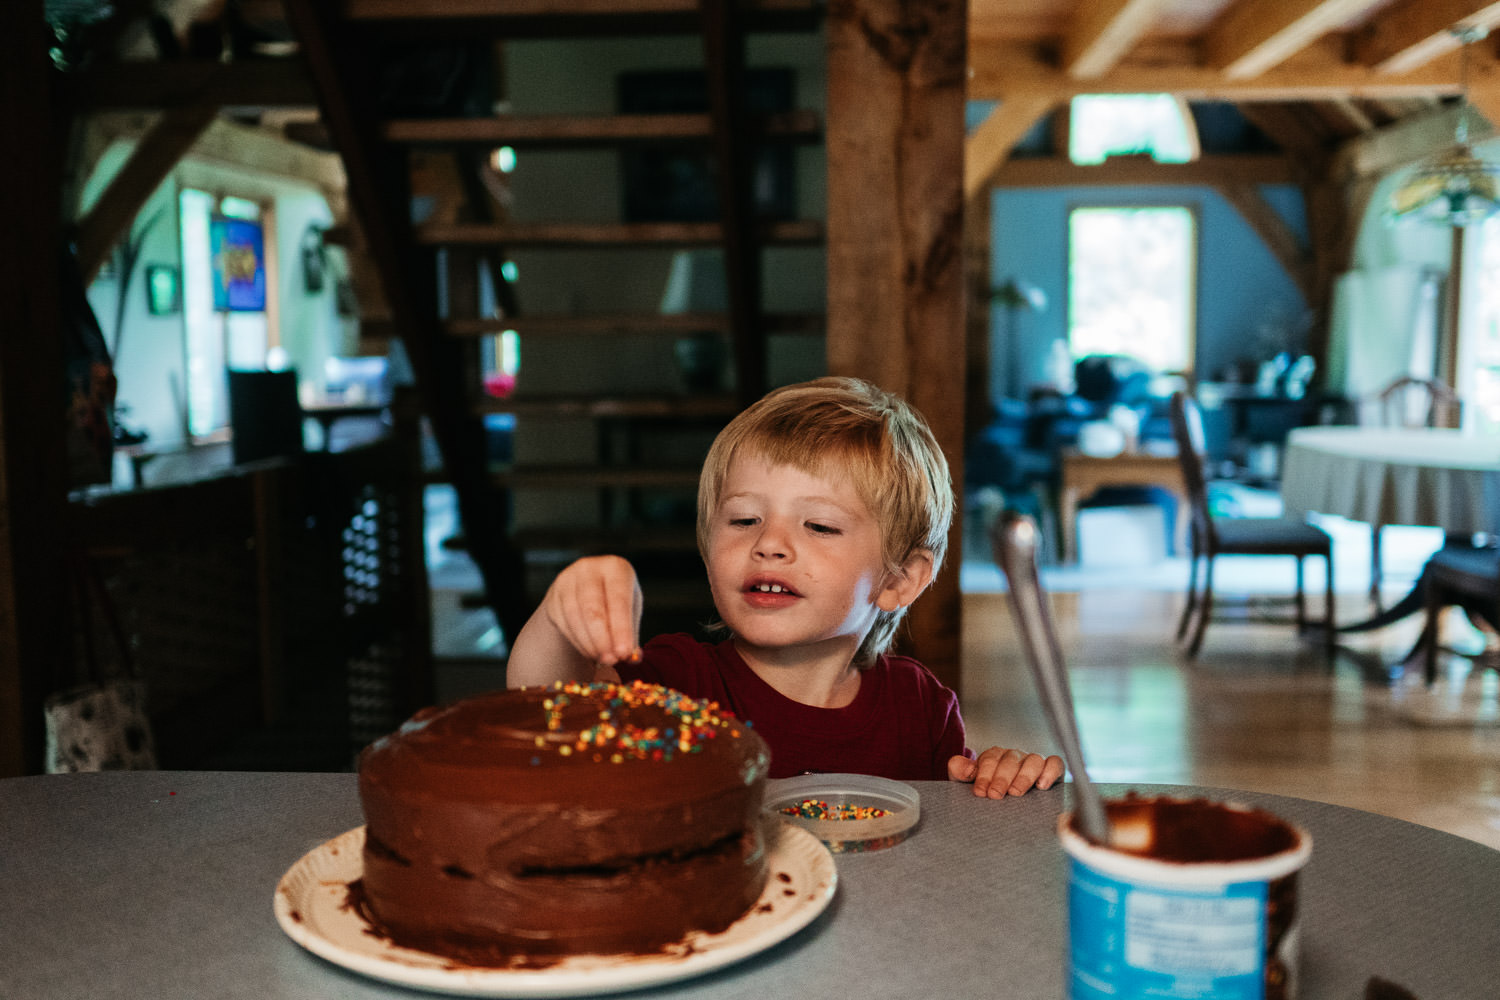 A little boy decorates a cake with sprinkles.